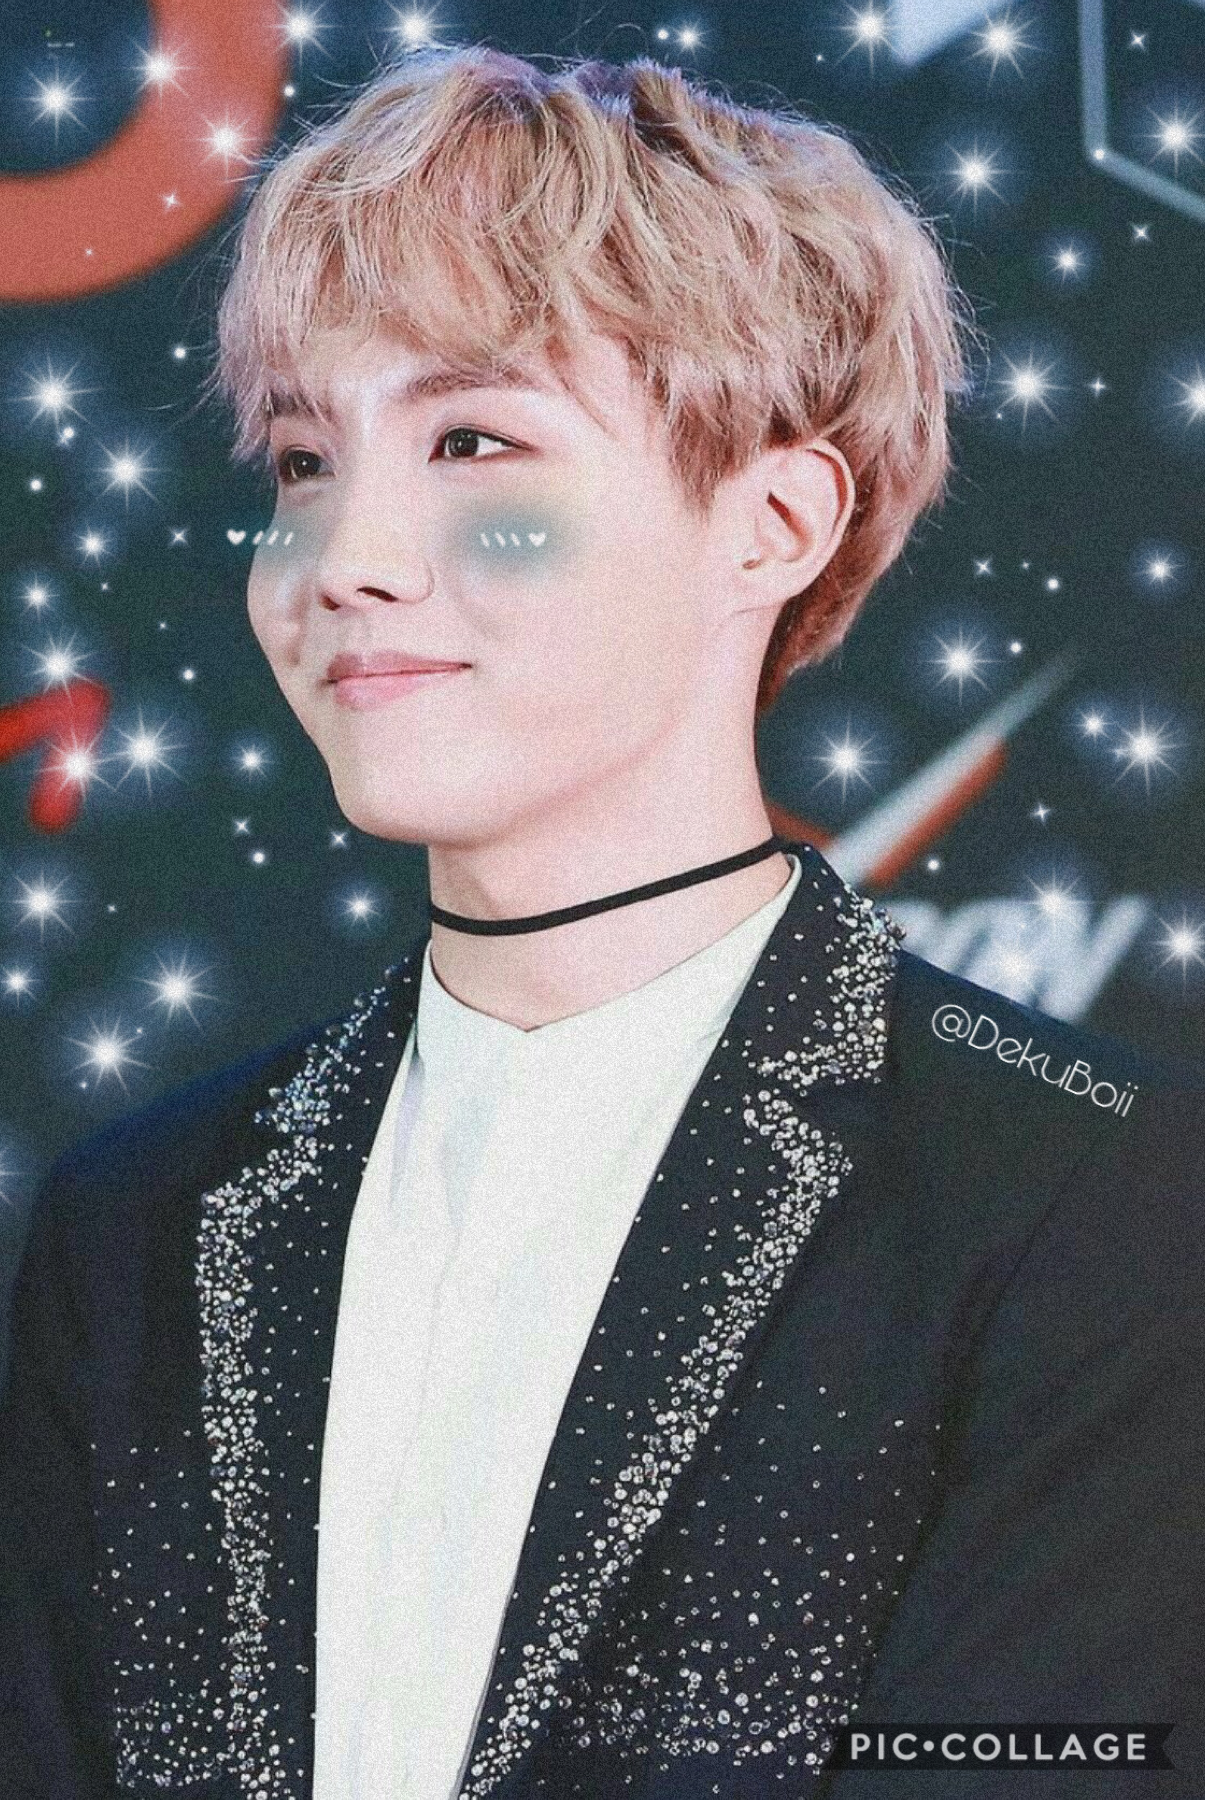 This one didn't come out as good as the Jungkook one...but eh, heyo